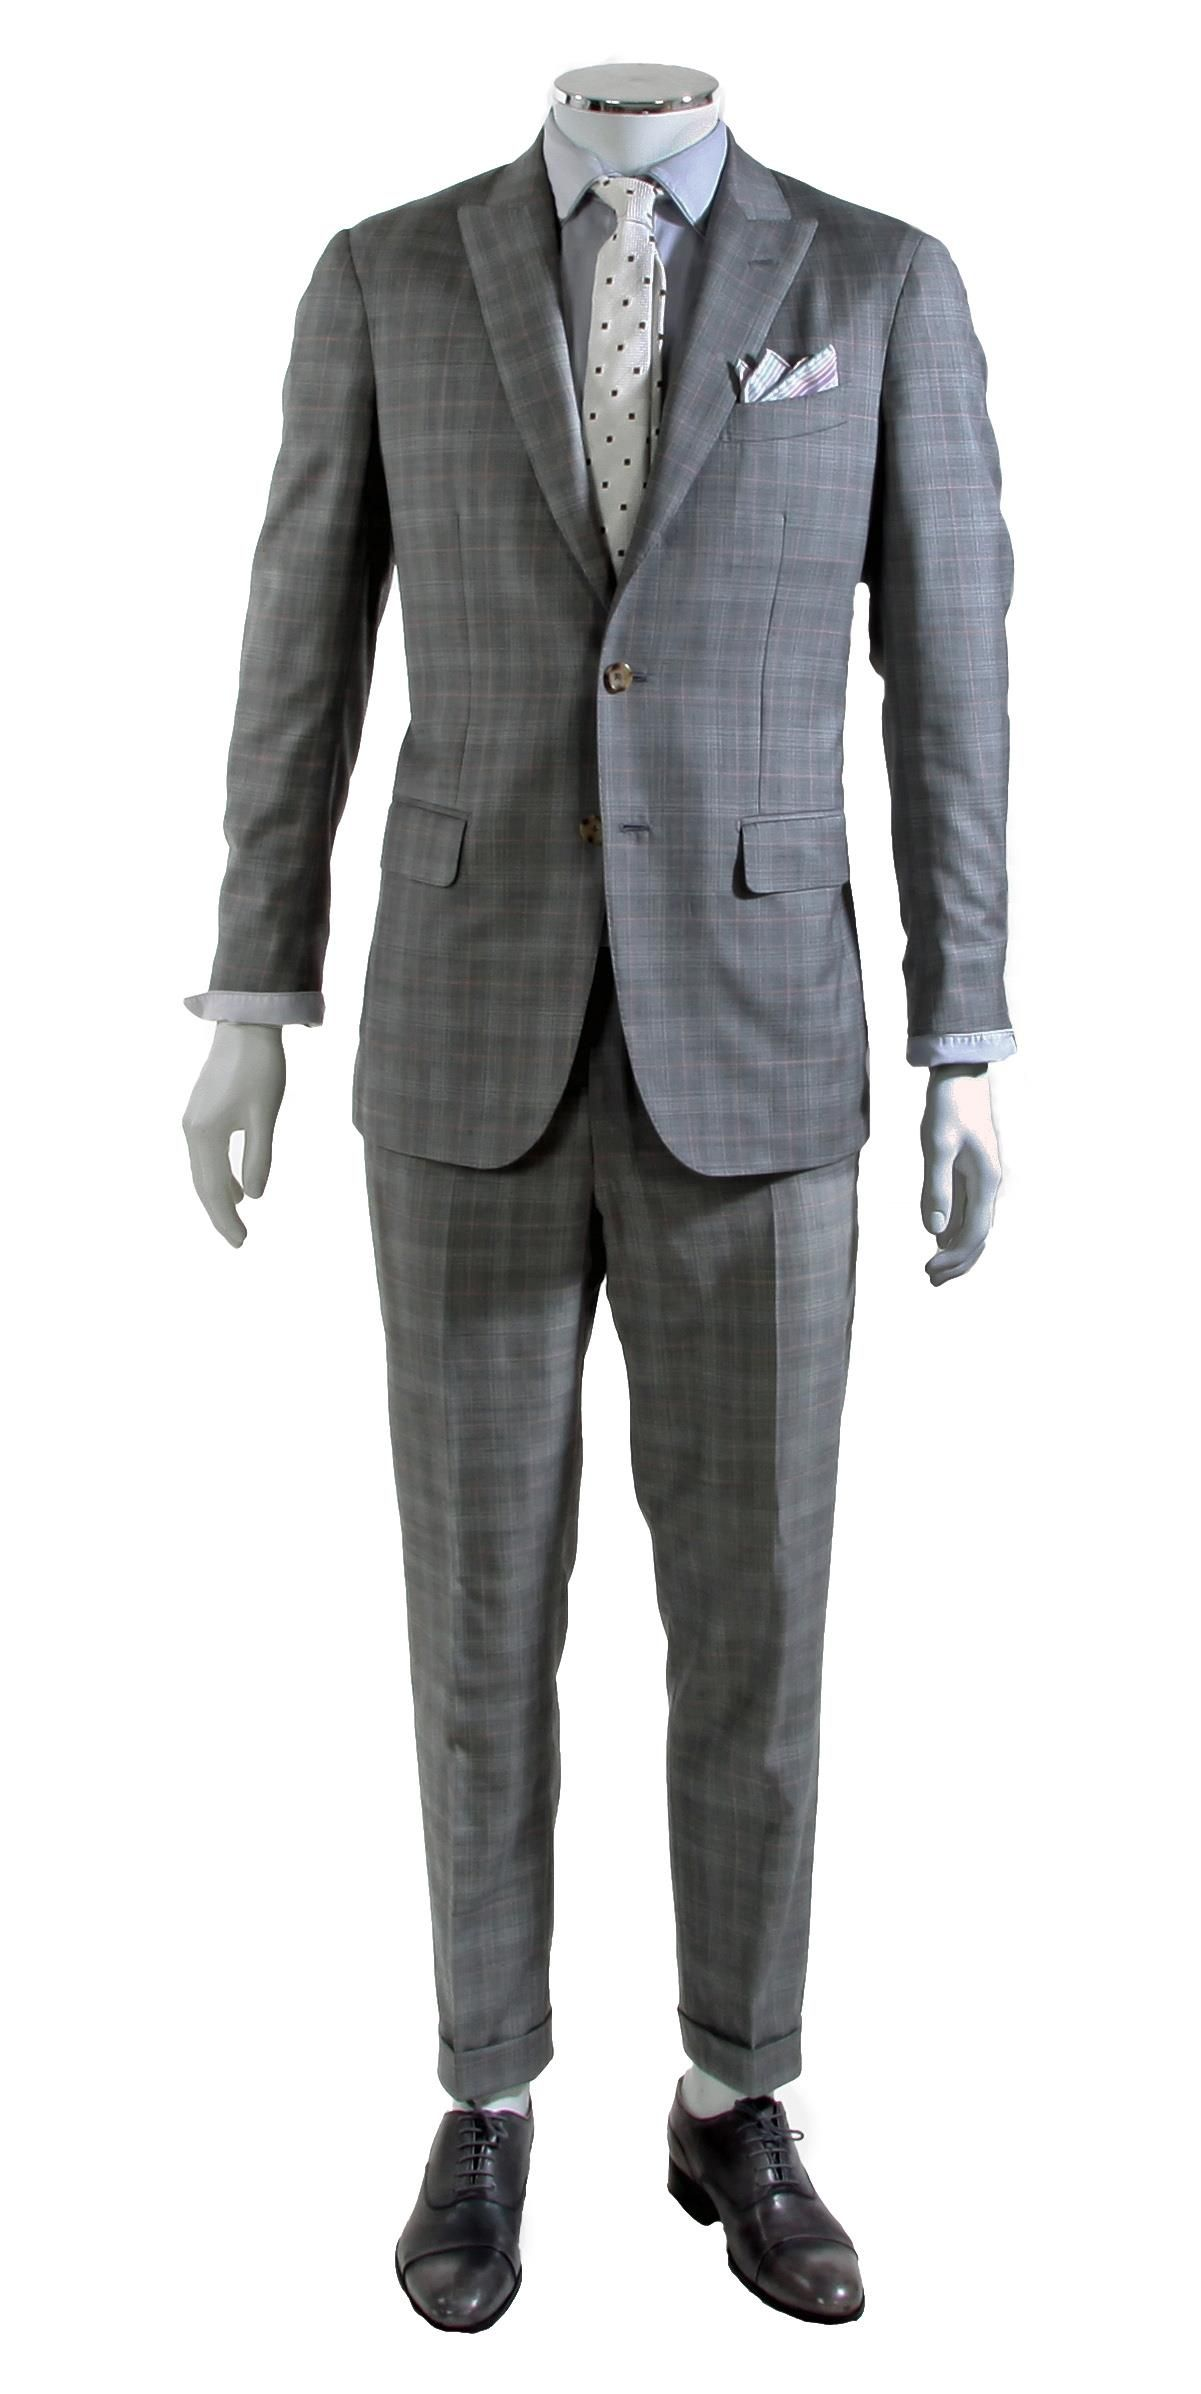 J.Crew LUDLOW FIELDING SUIT JACKET IN WINDOWPANE ENGLISH SPRING WOOL (Fox  Brothers Mill)  6f569ada0